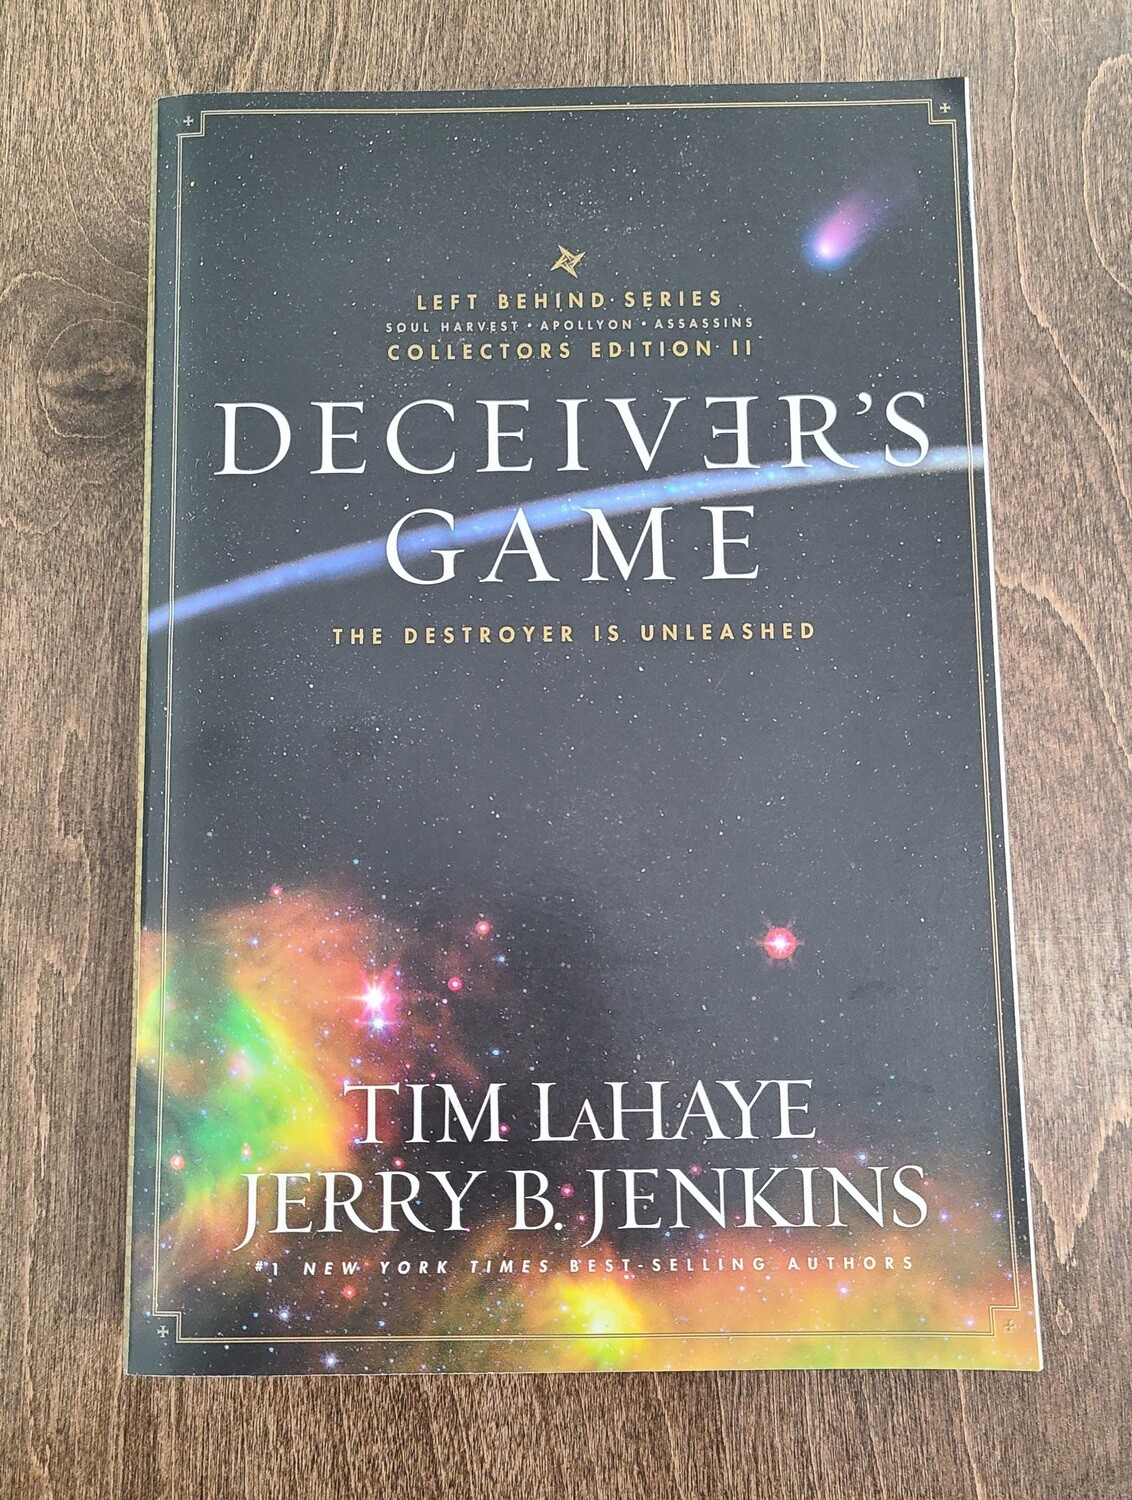 Deceiver's Game: Soul Harvest, Apollyon, and Assassins - Volume II by Tim LaHaye and Jerry B. Jenkins